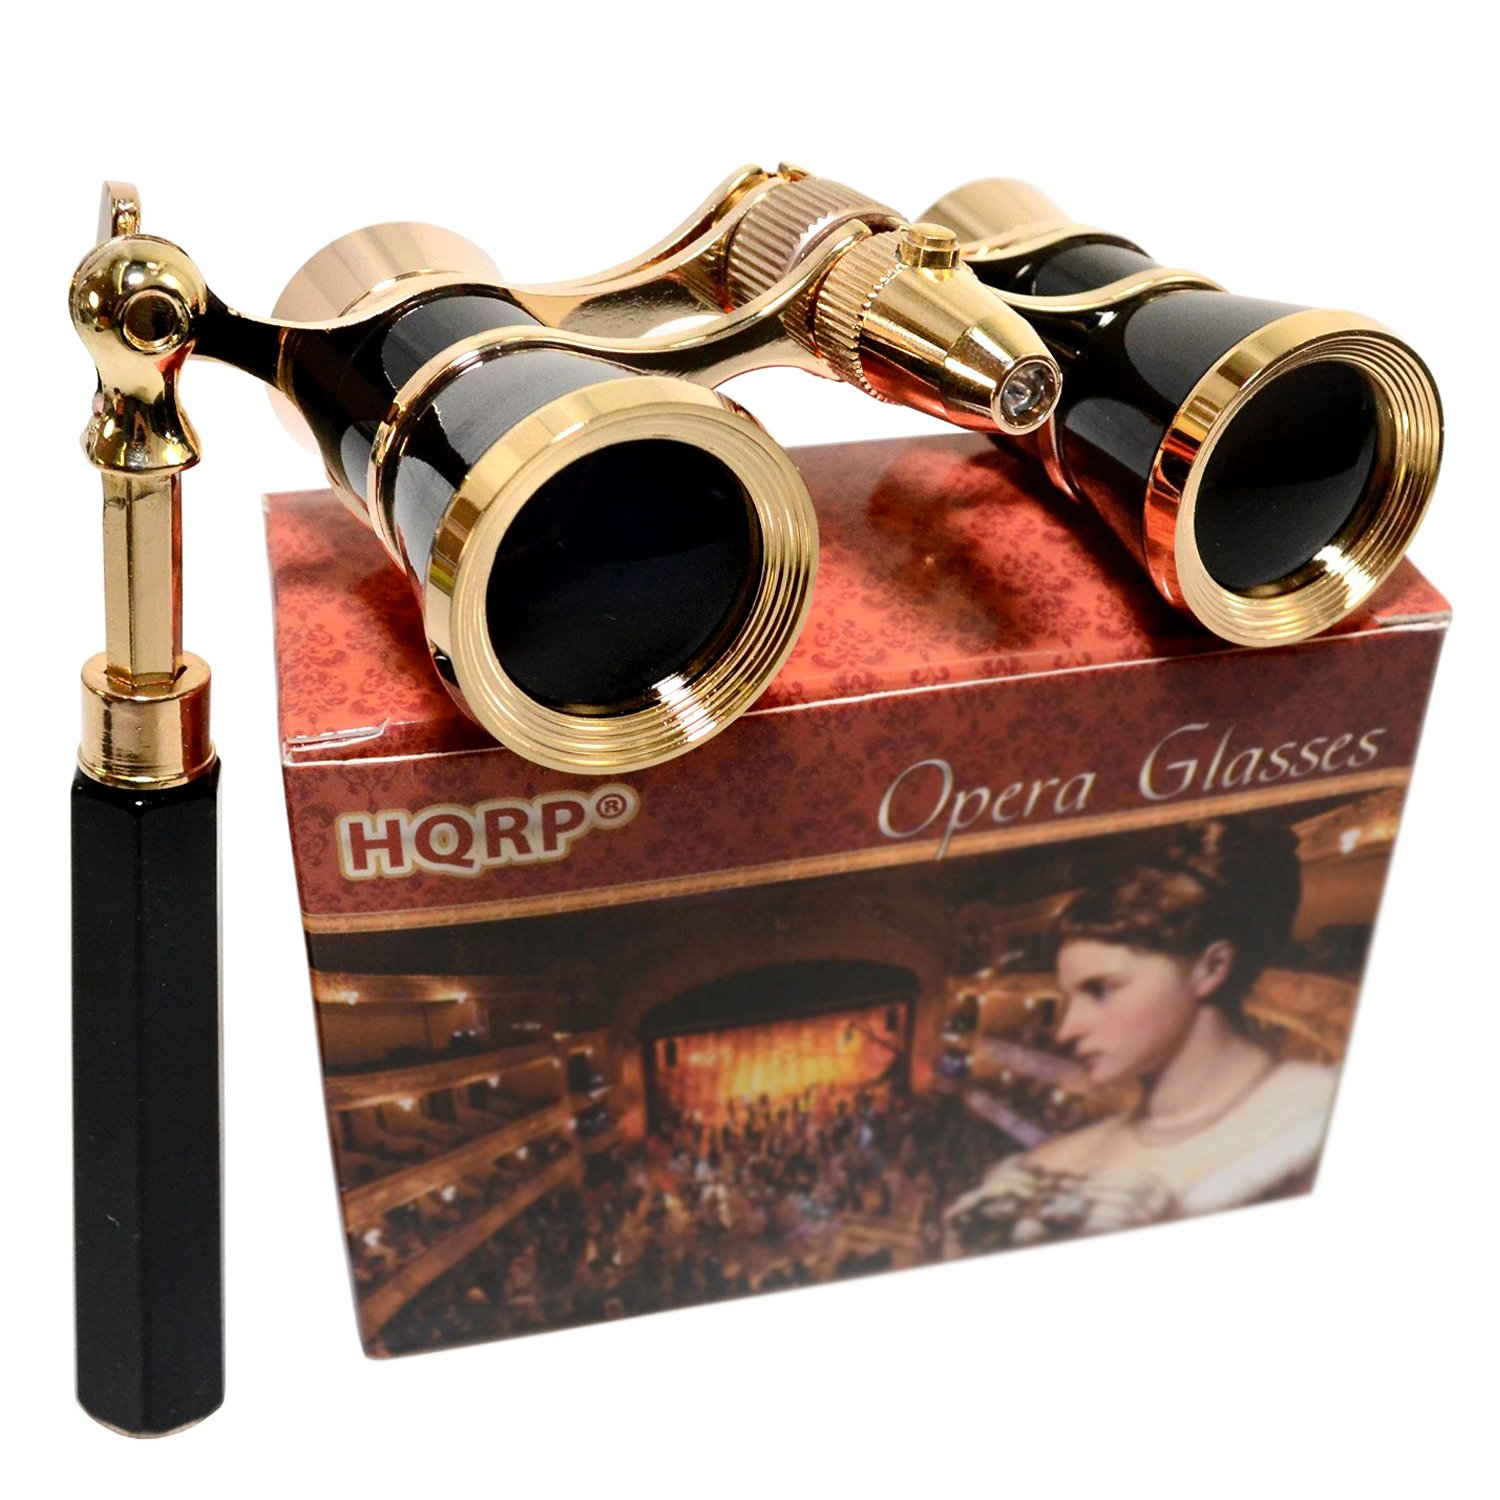 HQRP Opera Glasses s w/Crystal Clear Optic (CCO) 3 x 25 with Built-In Foldable Handle and Red Reading Light (Black with Gold)